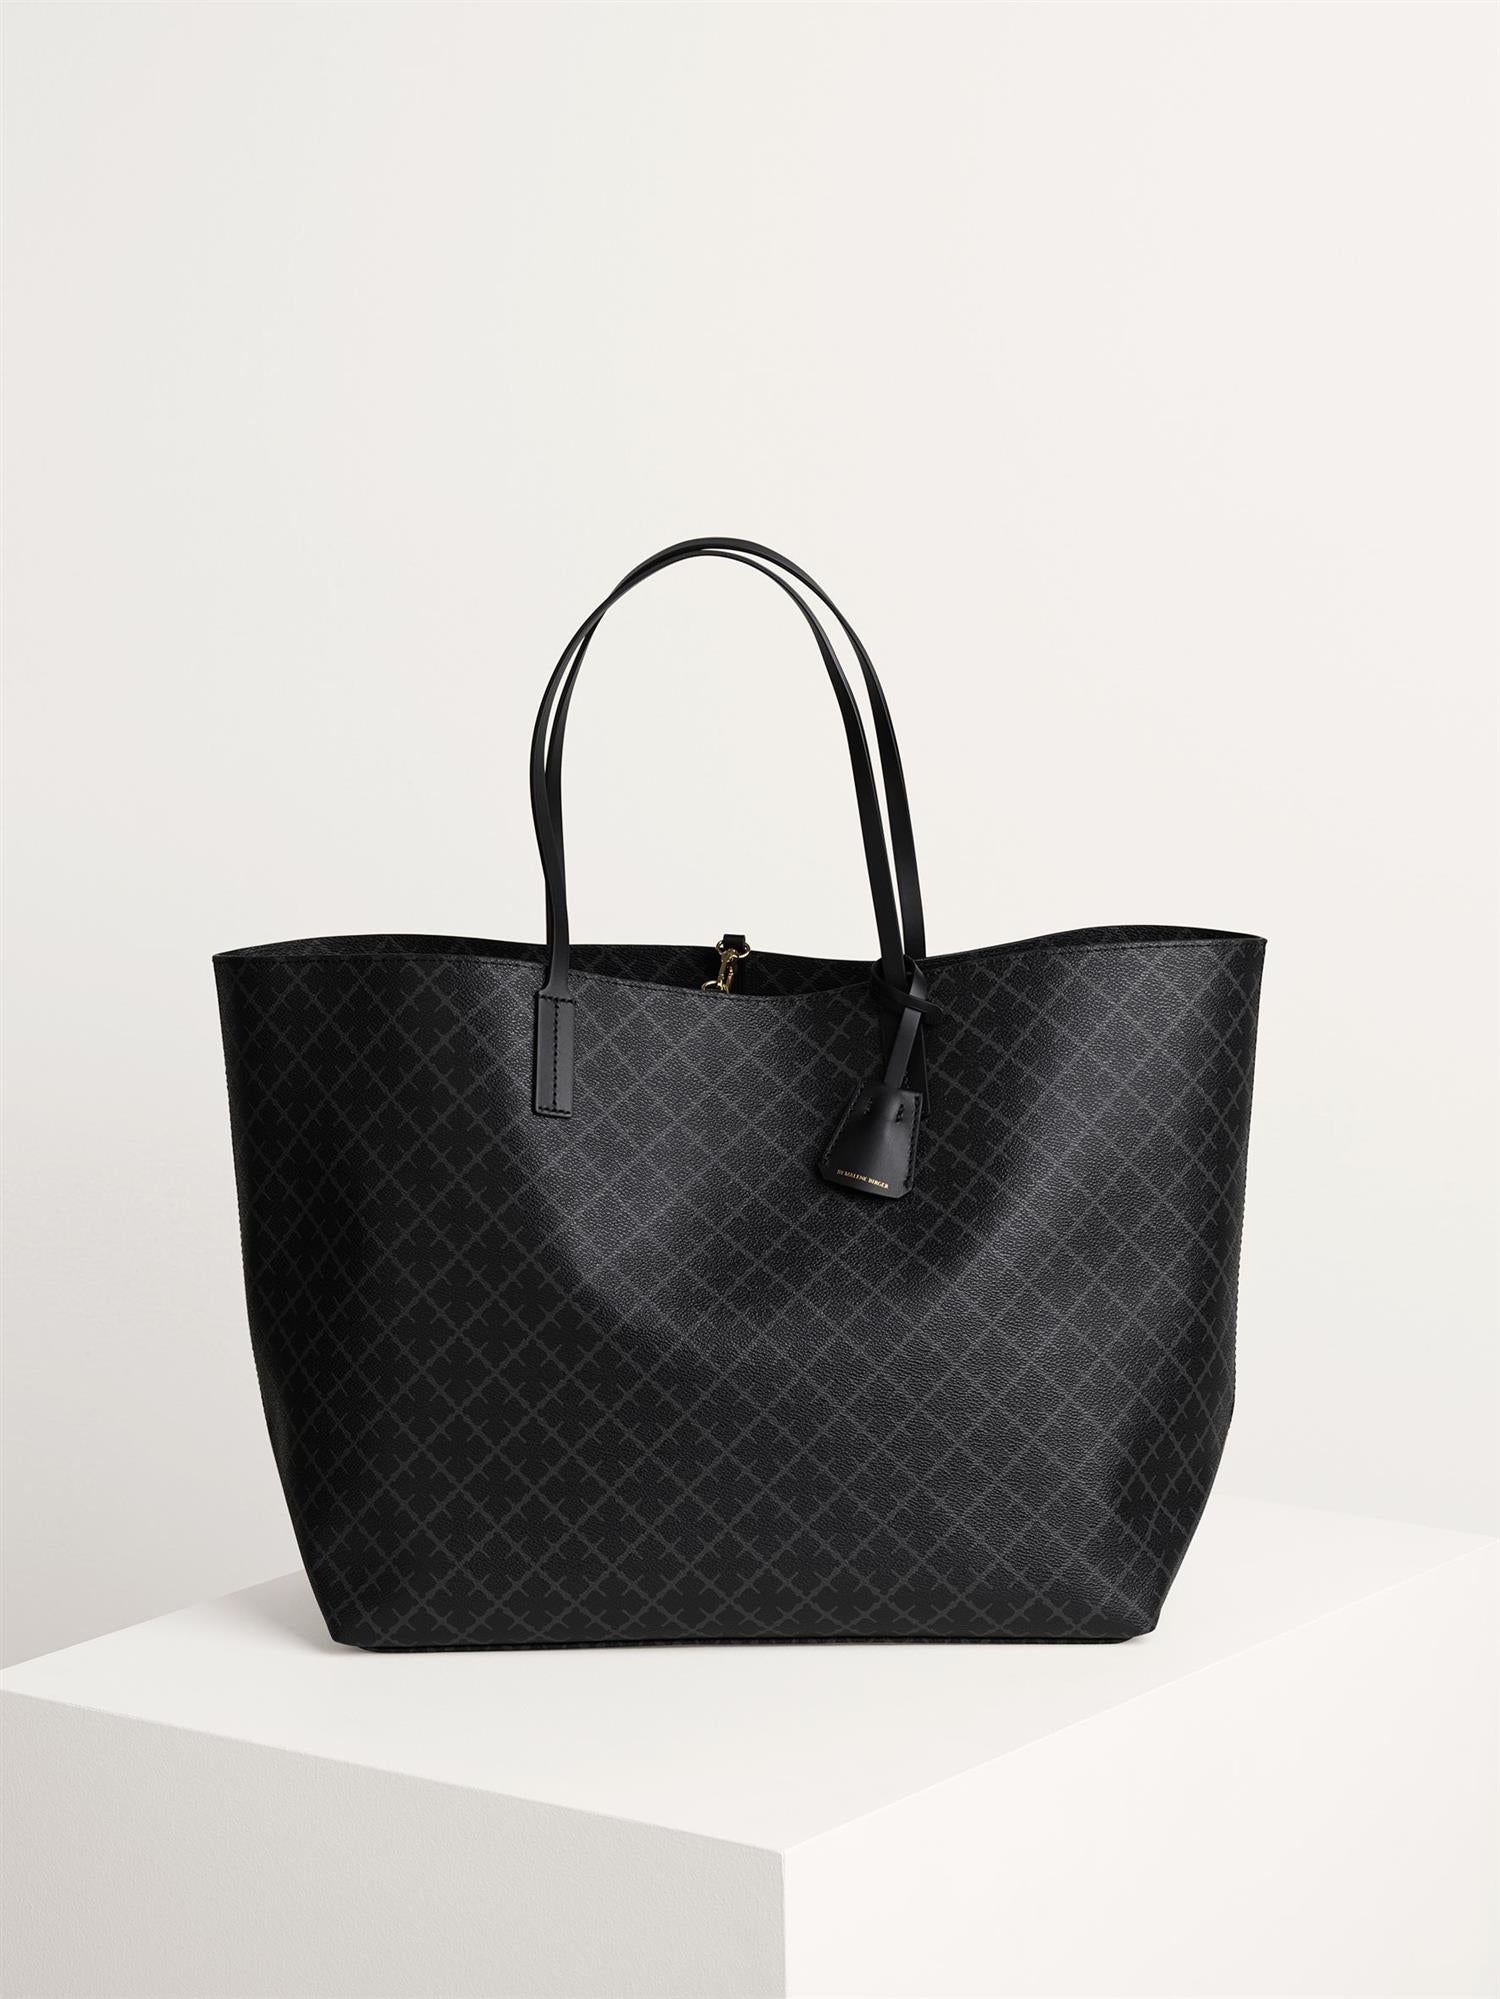 BY MALENE BIRGER ABI TOTE